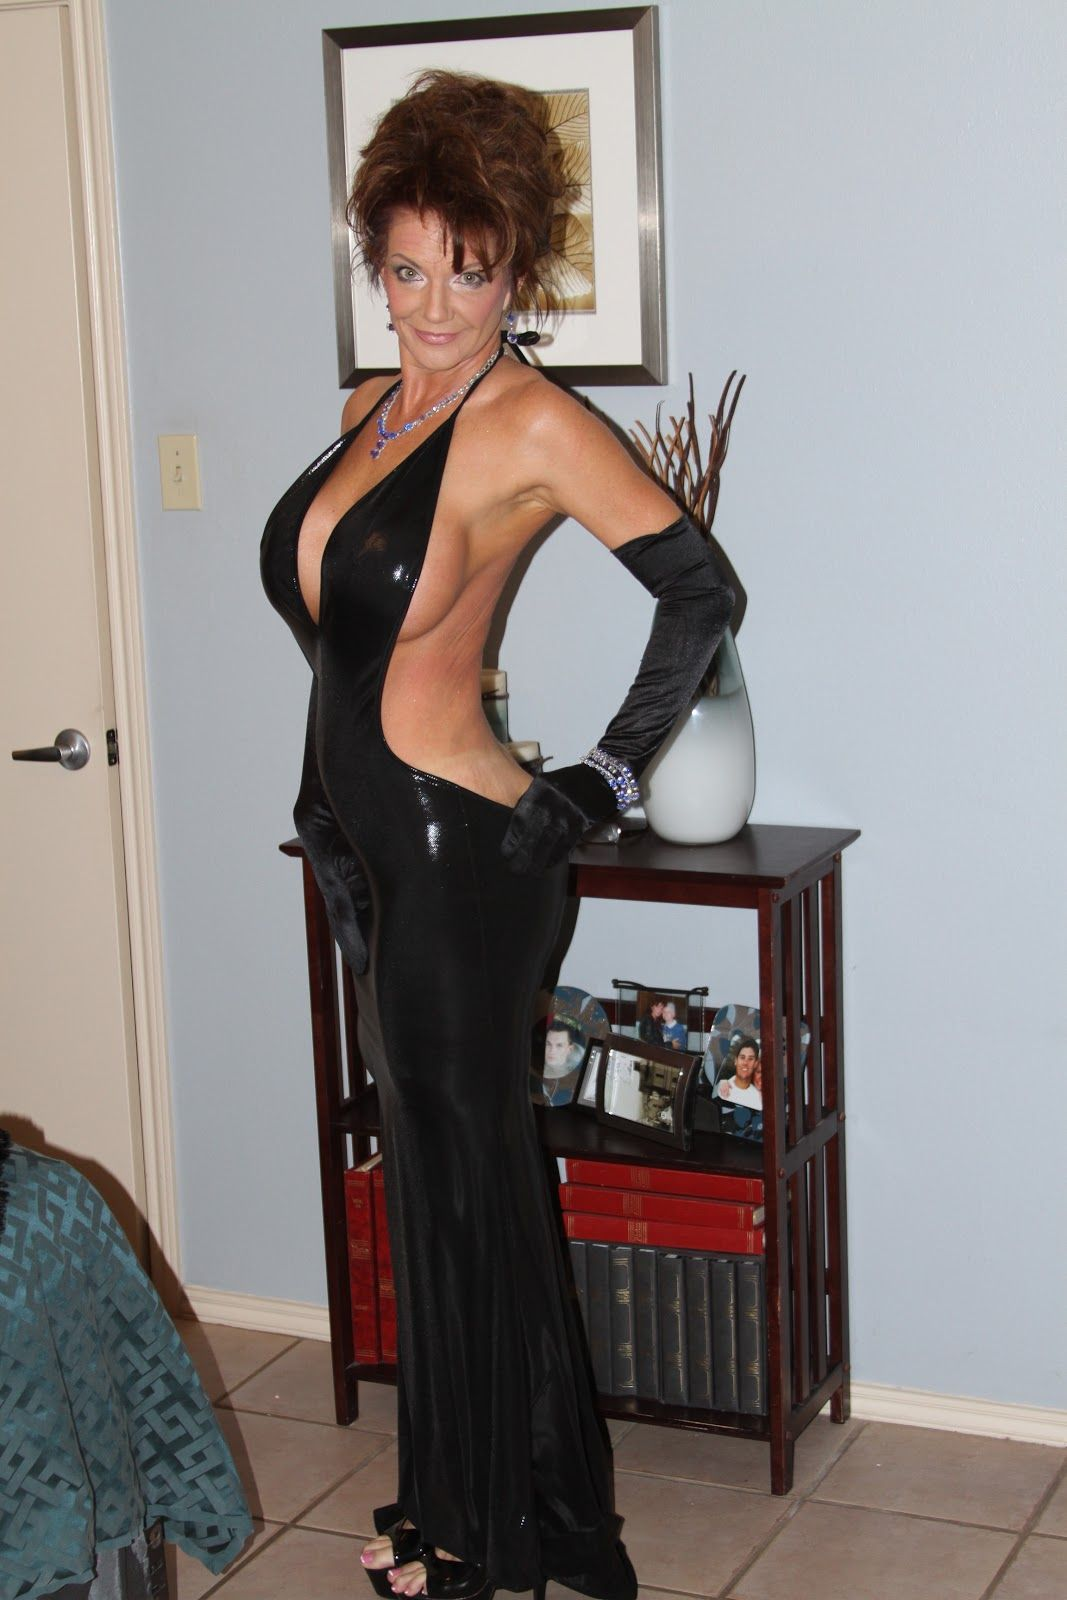 stephan cougars personals Meeting cougars page 1 of 1 : i really like dating (and meeting older women) but have had no luck on this site i take good care of myself, possess good self esteem, and am not a total weirdo.